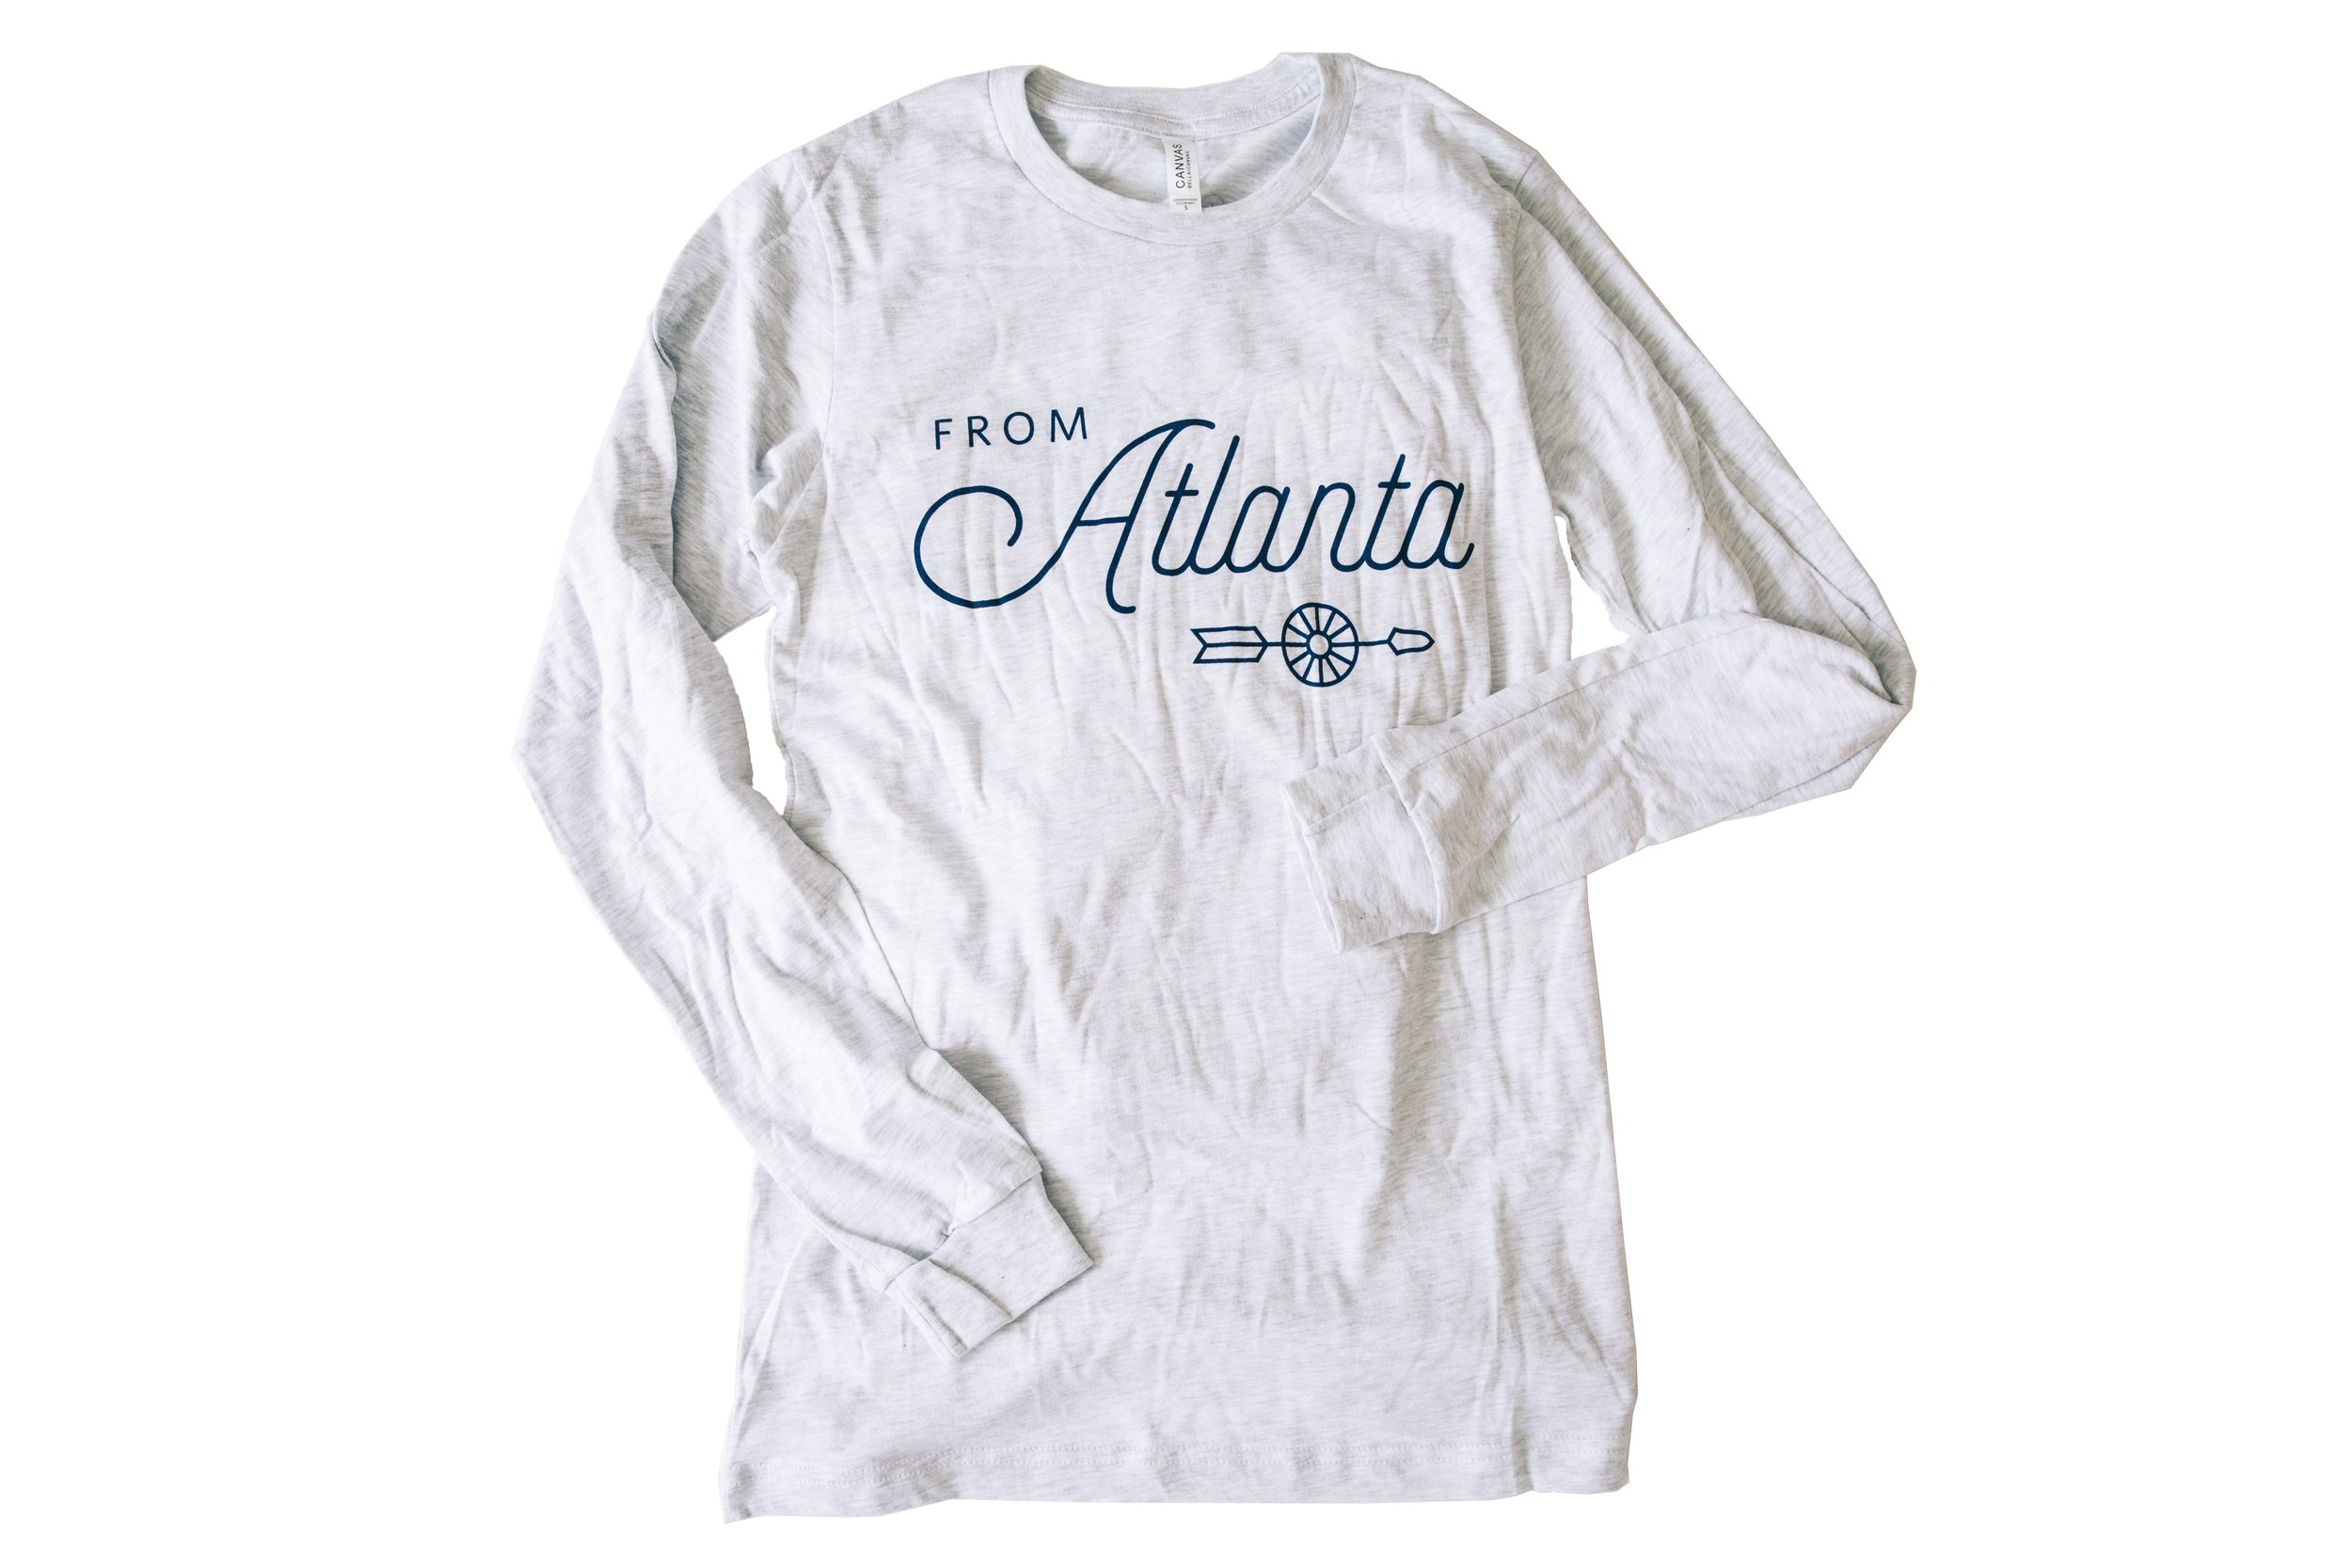 East Pole-From Atlanta Long Sleeve.jpg